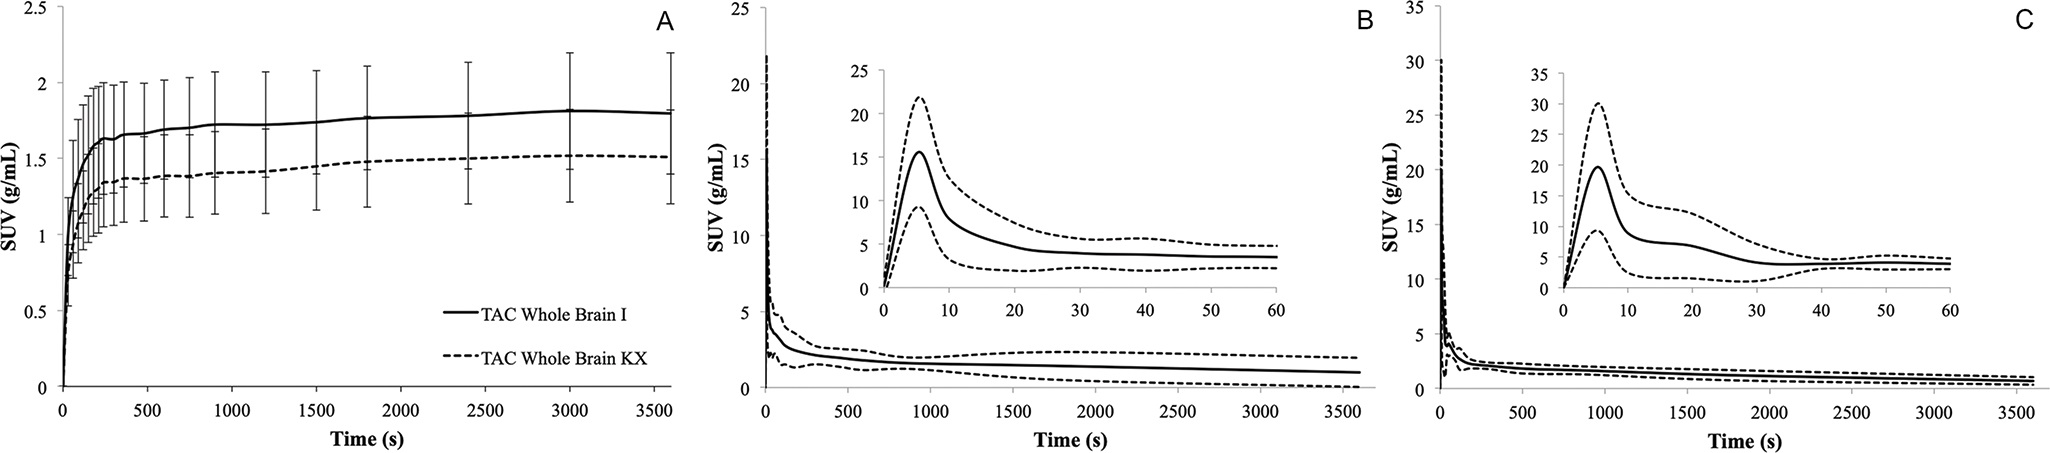 Representative time-activity curves of brain and plasma input from the ketamine/xylazine or isoflurane group. A) Average [18F]FDG time-activity curves of the brain. Data are expressed as the standardized uptake value (mean ±SD). B) [18F]FDG time-activity curves for whole blood from the ketamine/xylazine group. The dashed line represents the confidence interval, and the solid line represents the mean. C) [18F]FDG time-activity curves for whole blood from the Isoflurane group. The dashed line represents the confidence interval, and the solid line represents the mean.